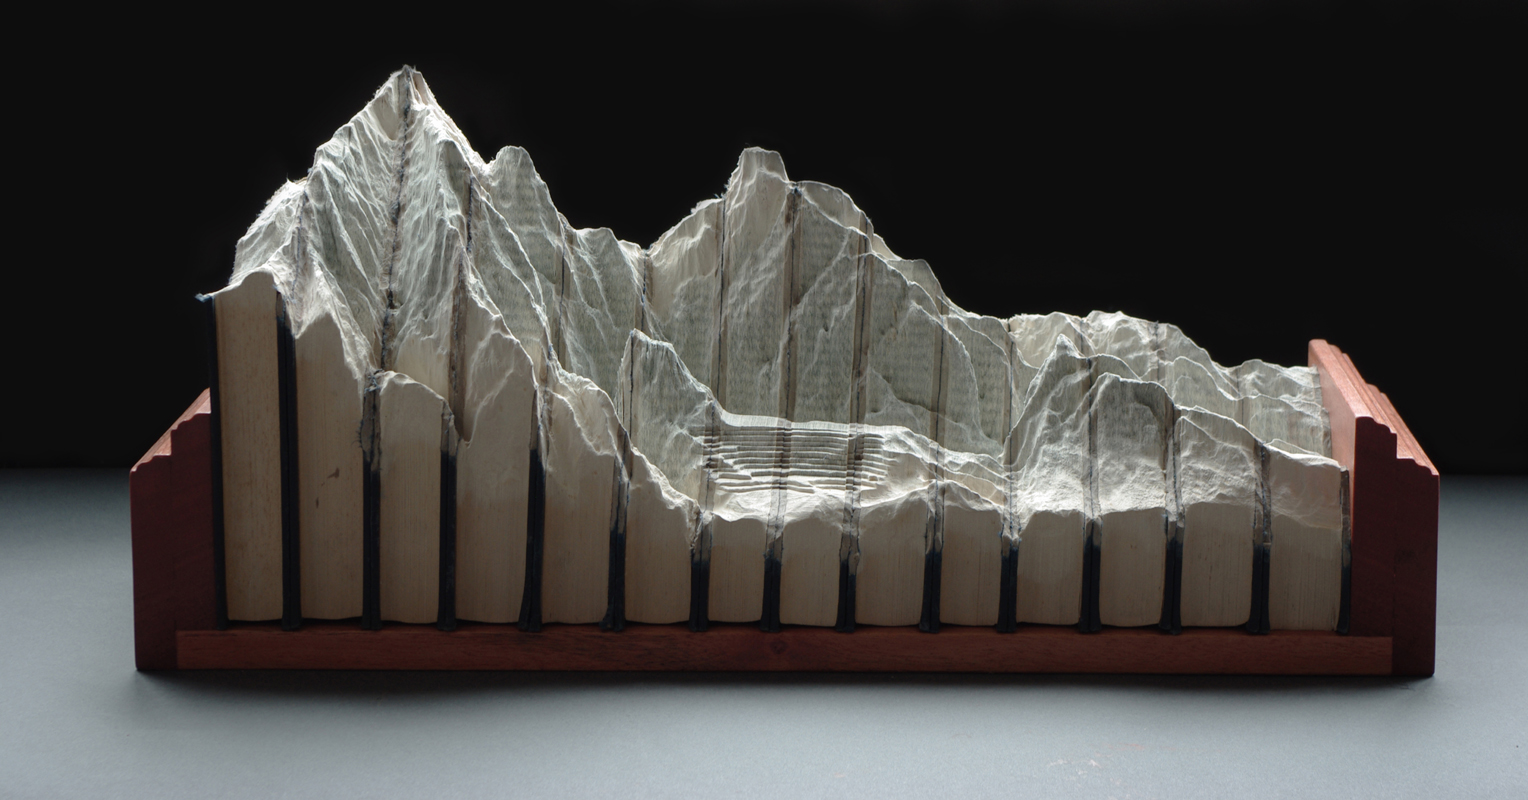 18 historia das americass1 Mind Blowing Book Sculptures by Guy Laramee